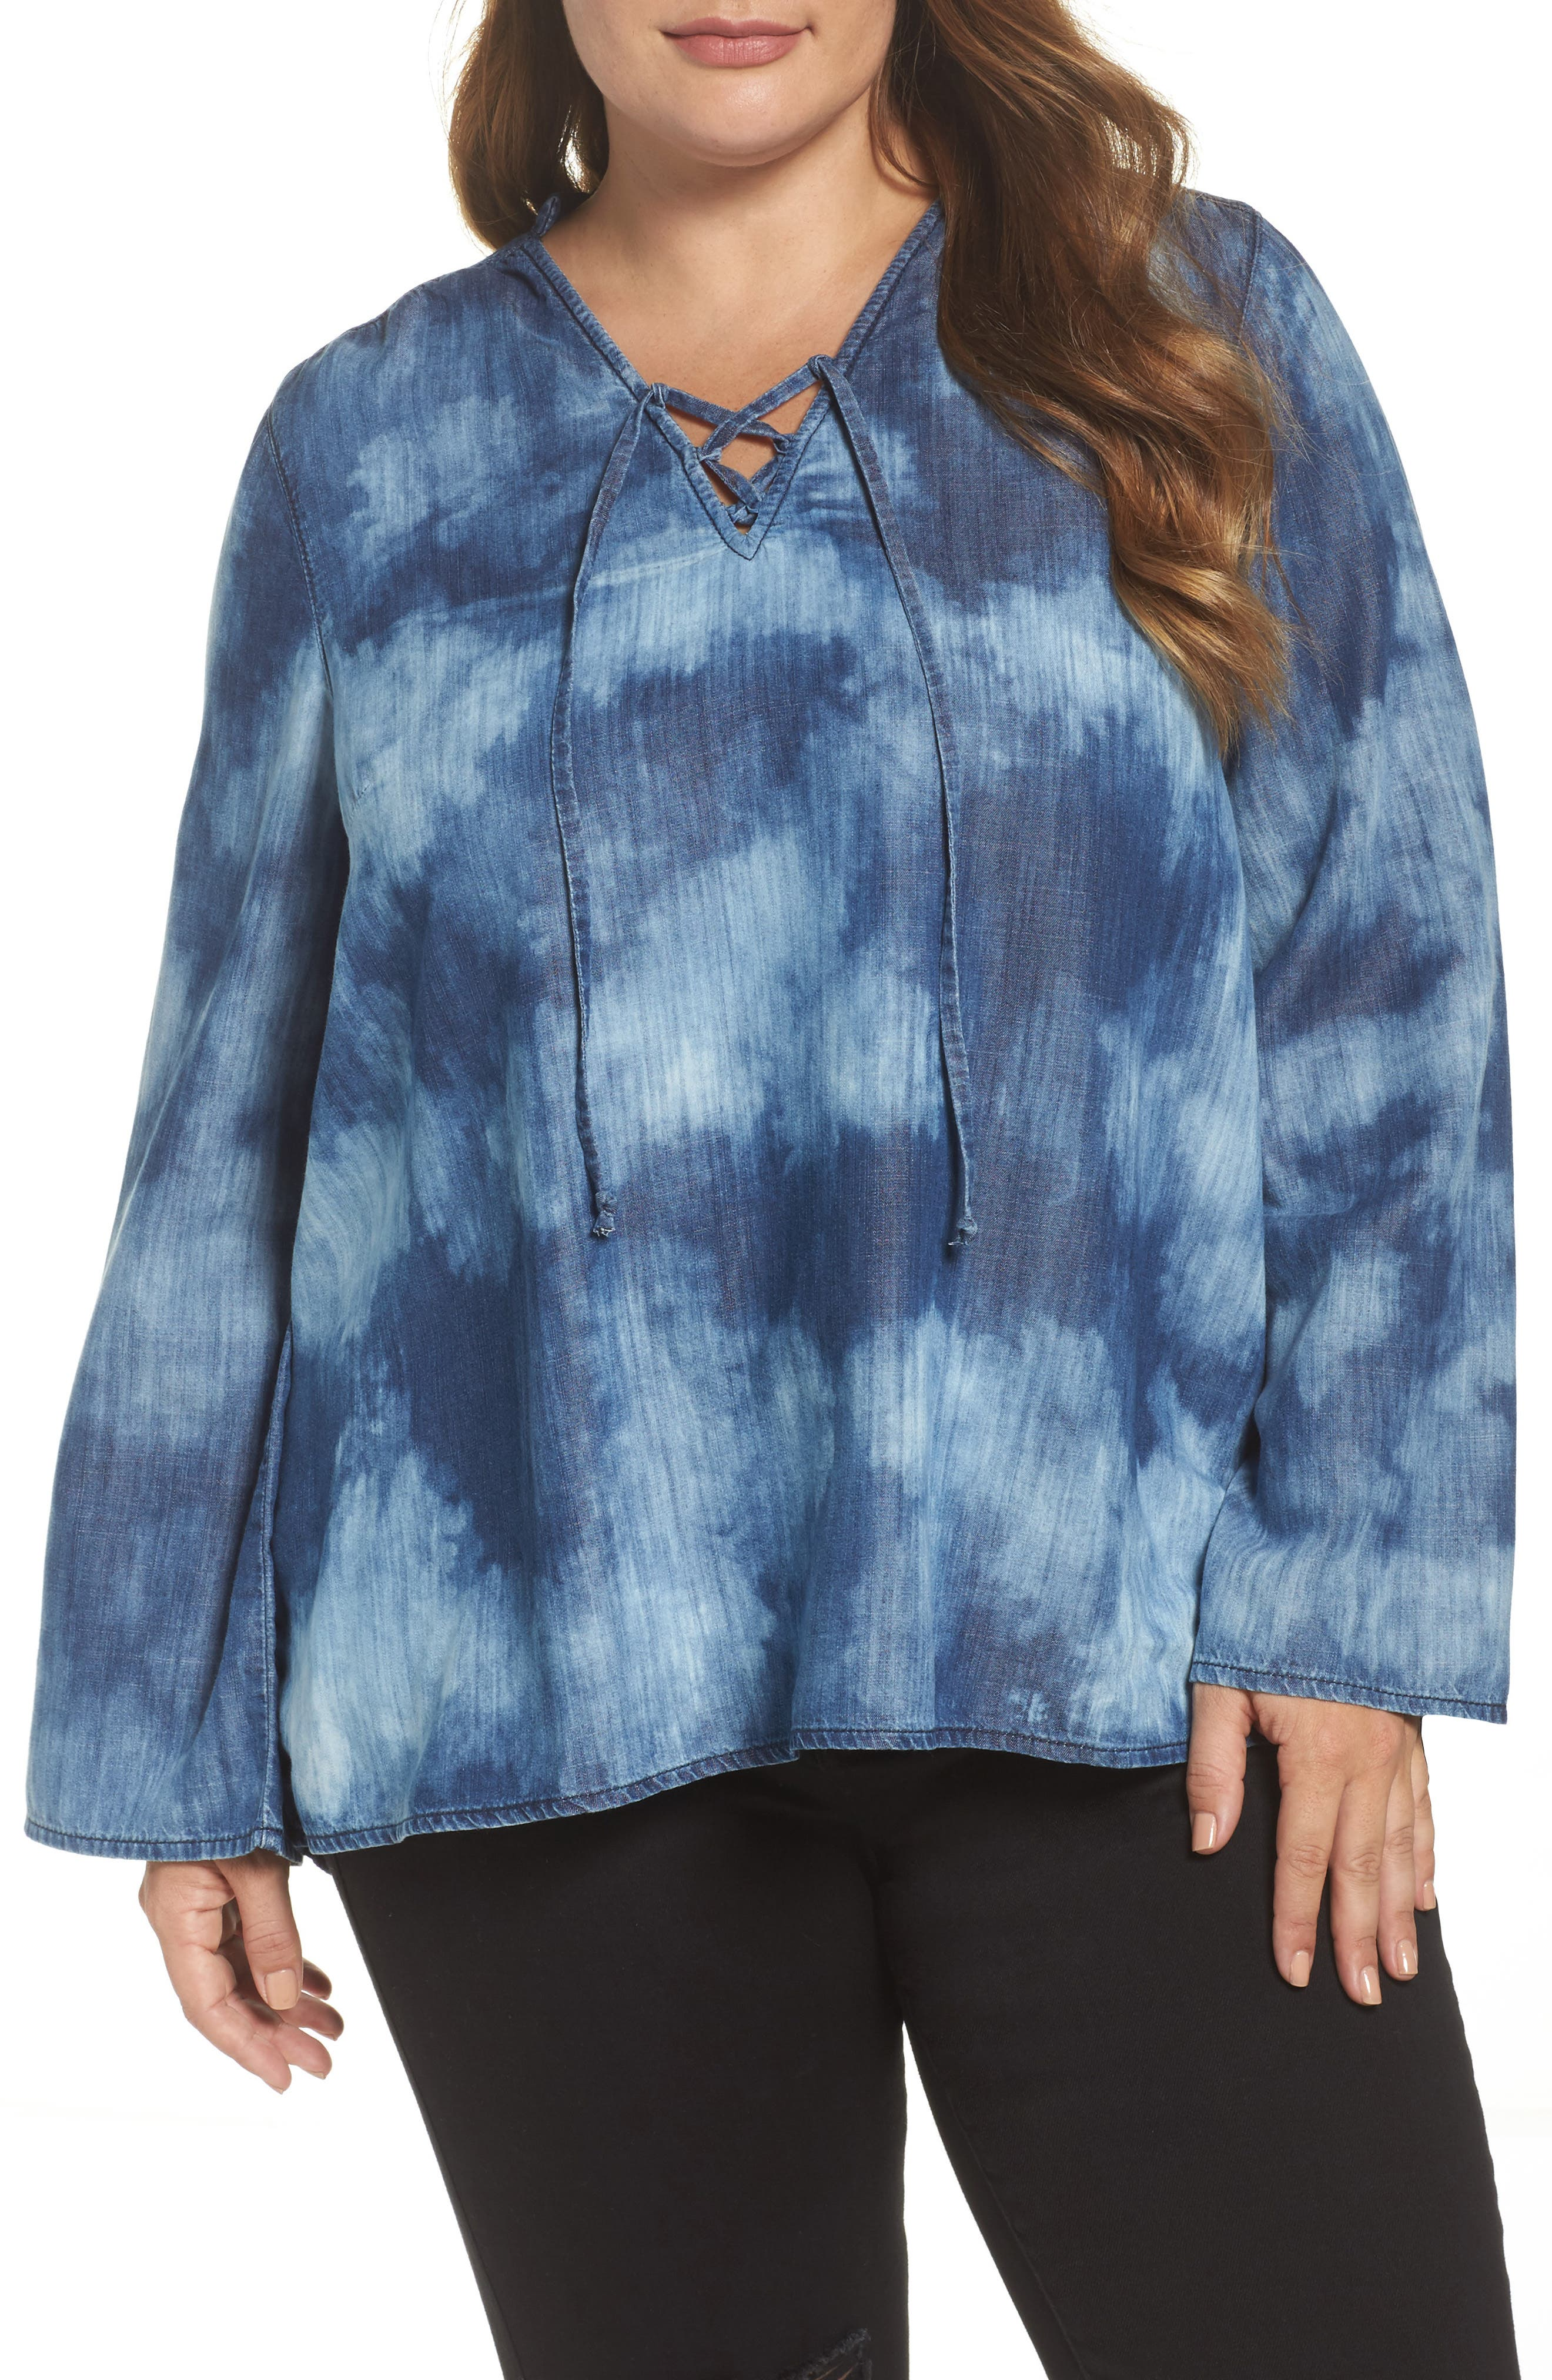 Alternate Image 1 Selected - Melissa McCarthy Seven7 Bell Sleeve Top (Plus Size)